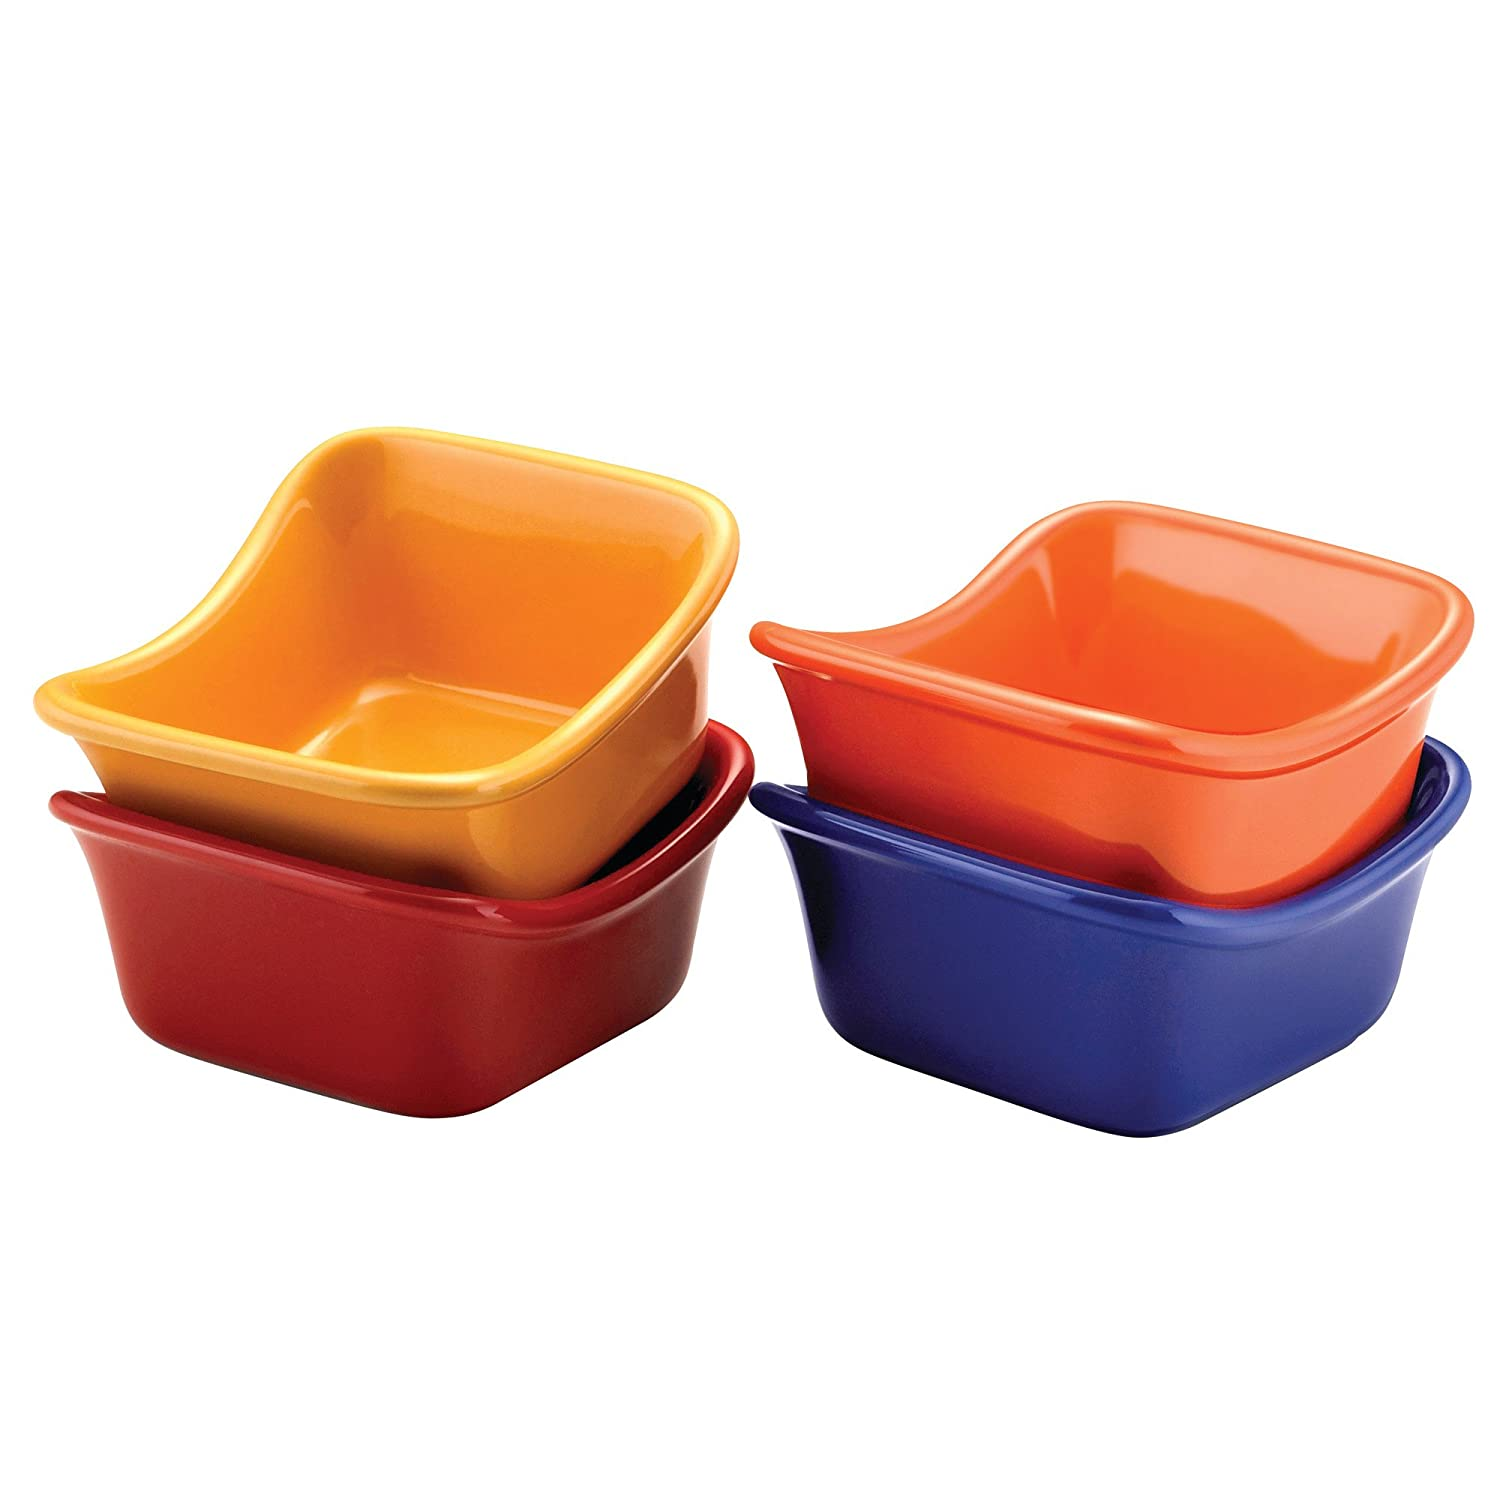 Rachael Ray Serveware Lil' Saucy Squares Stoneware Dipping Cups Set, Assorted